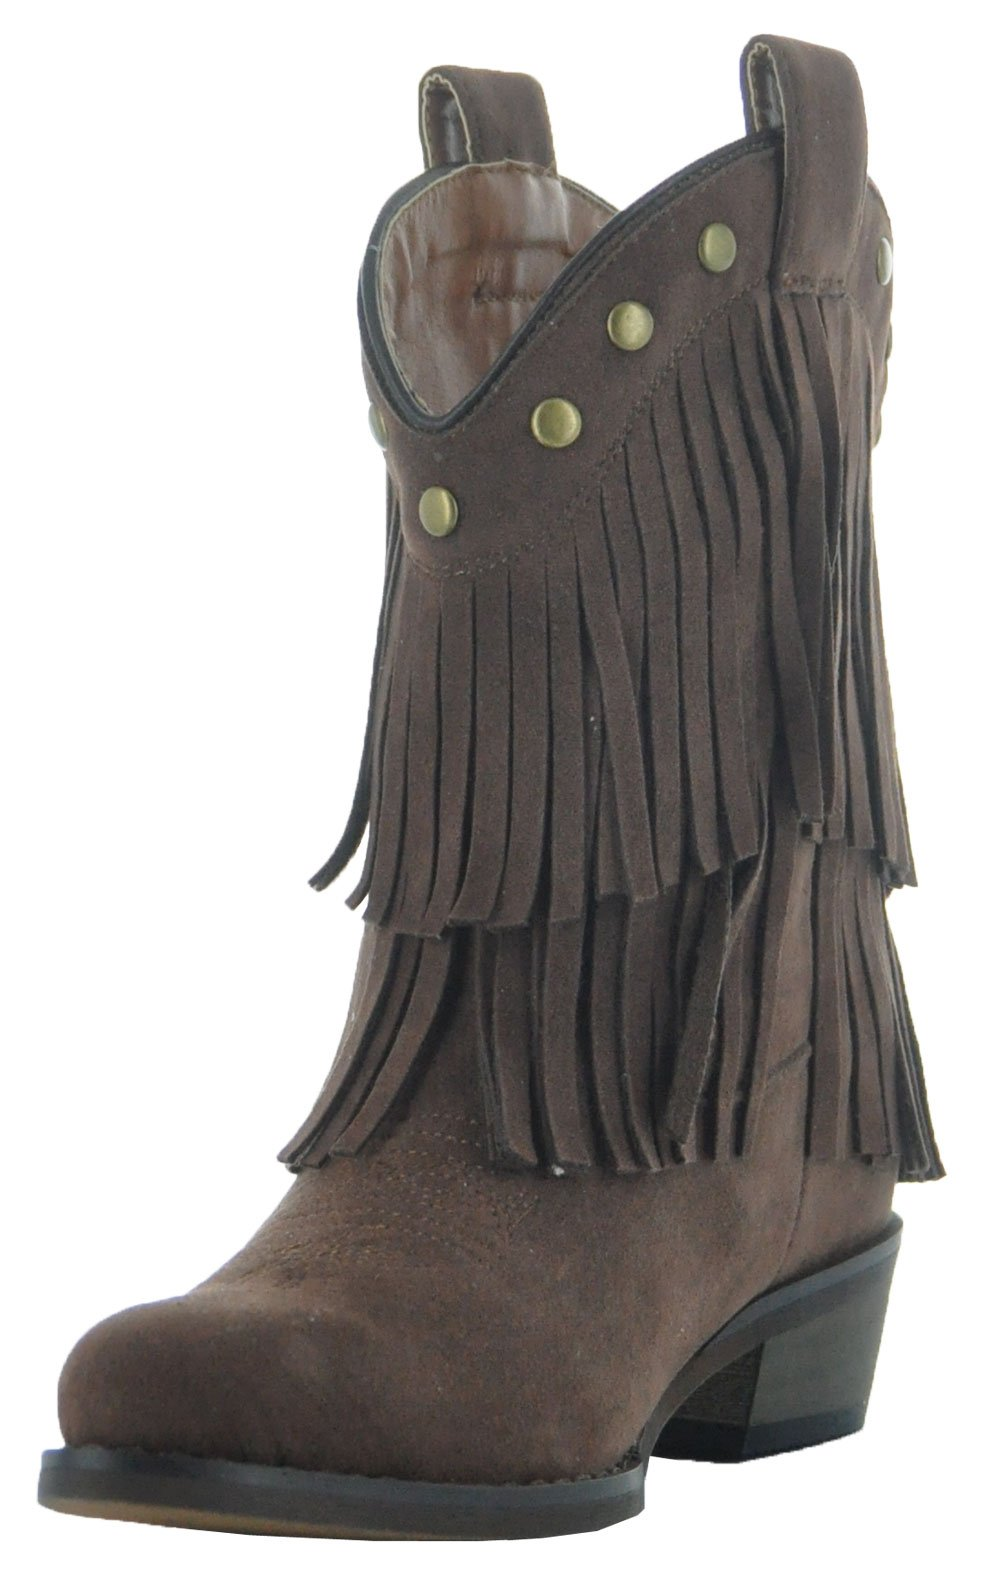 Little Kids Fun Fringe Brown Cowgirl Boots by Country Love Boots (1 Little Kids, Brown) by Country Love Boots (Image #6)